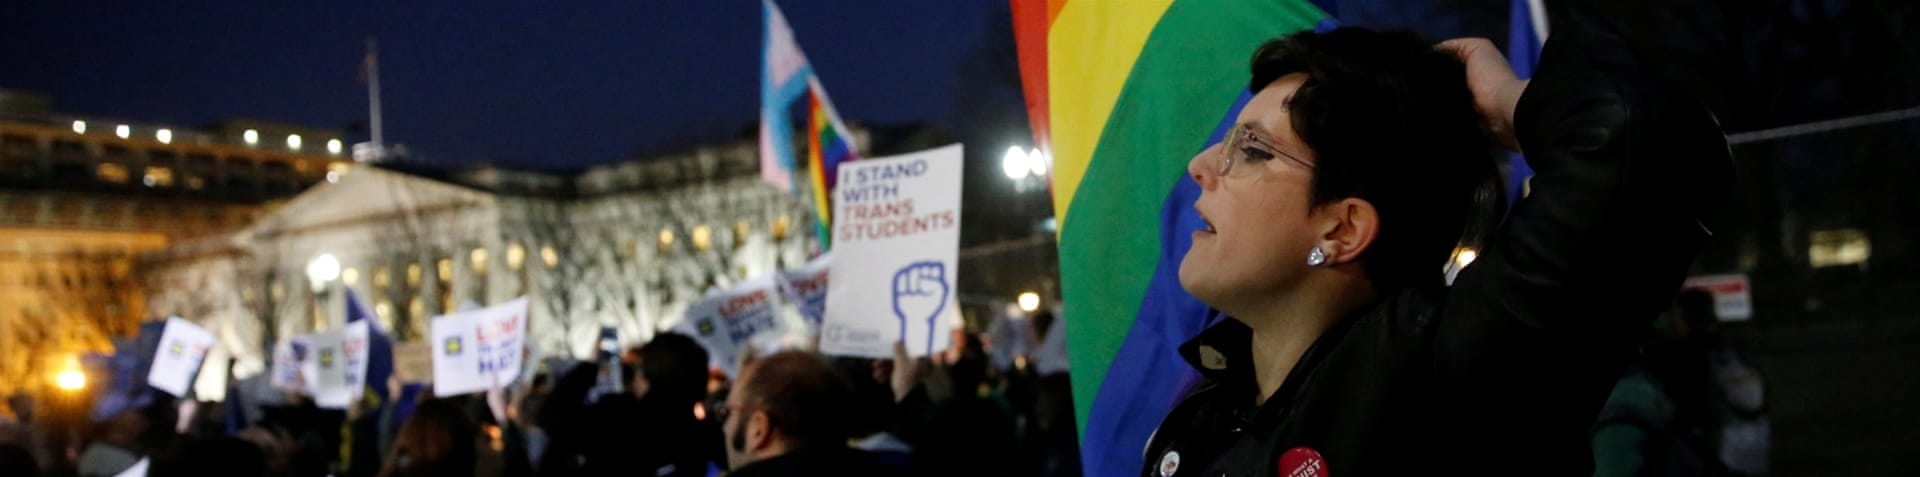 The Obama administration has been saying that prohibiting transgender students from using facilities that reflect their gender identity violates federal anti-discrimination laws [Jonathan Drake/Reuters]